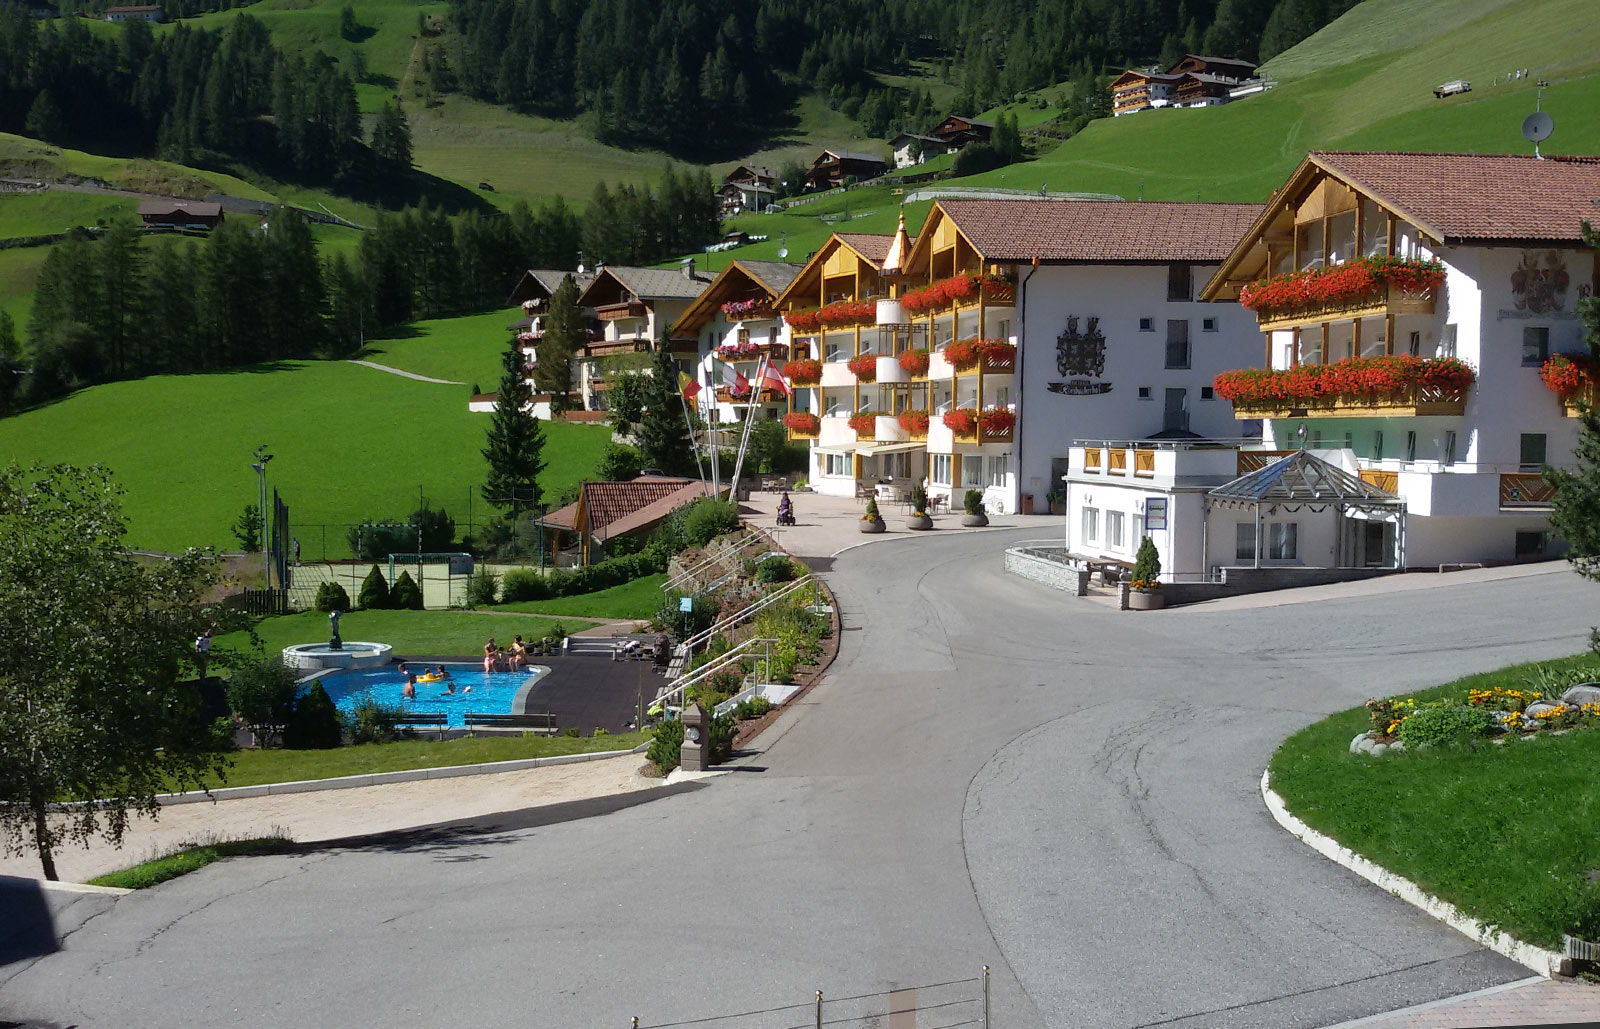 Hotel Rinsbacherhof a Molini di Tures in Valle Aurina